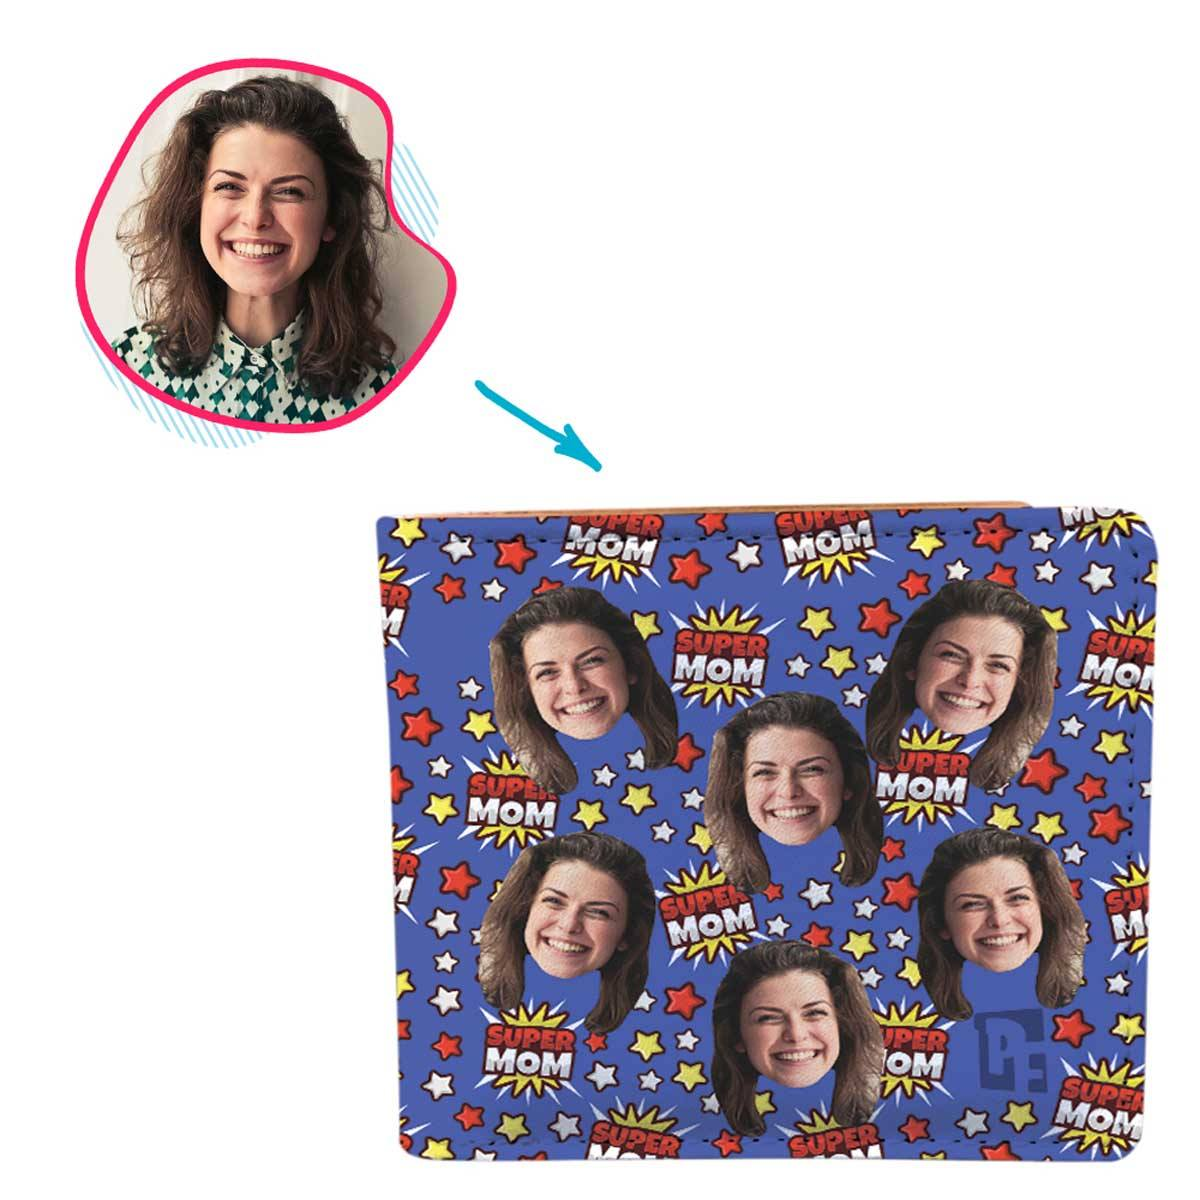 darkblue Super Mom wallet personalized with photo of face printed on it